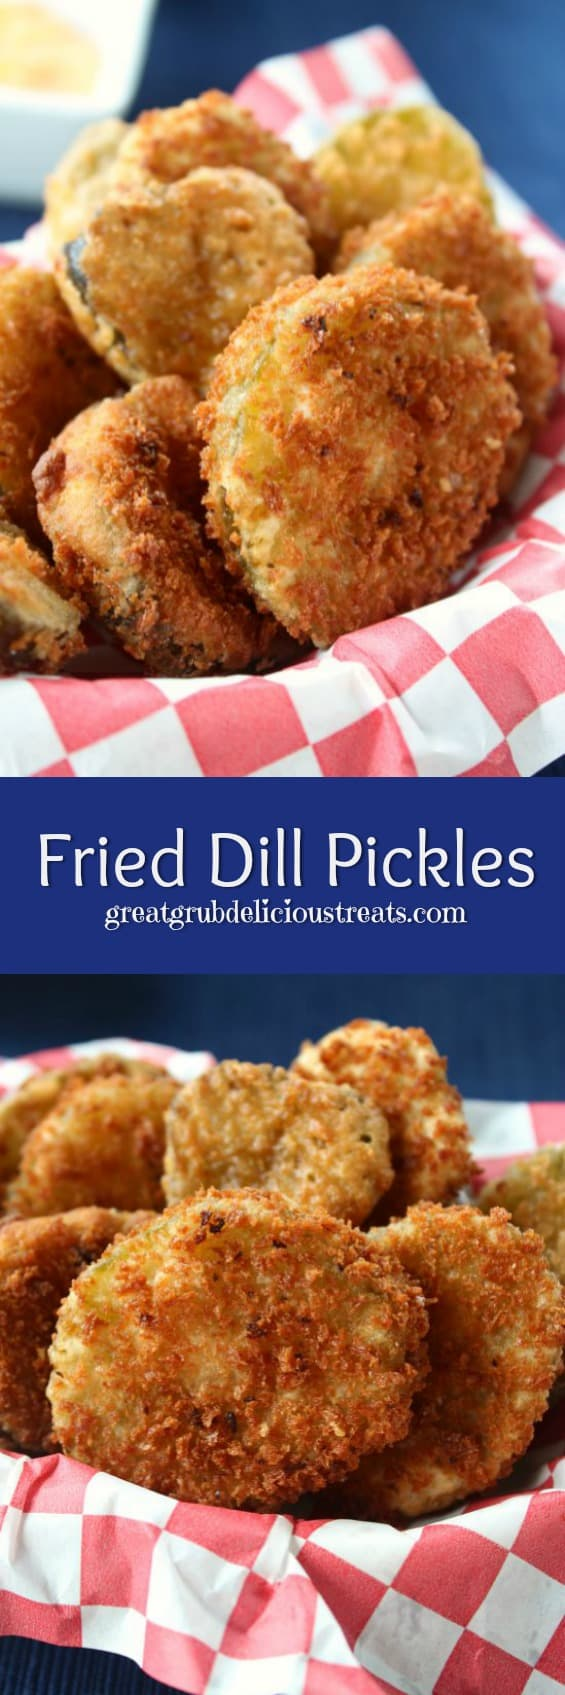 Fried Dill Pickles - Great Grub, Delicious Treats